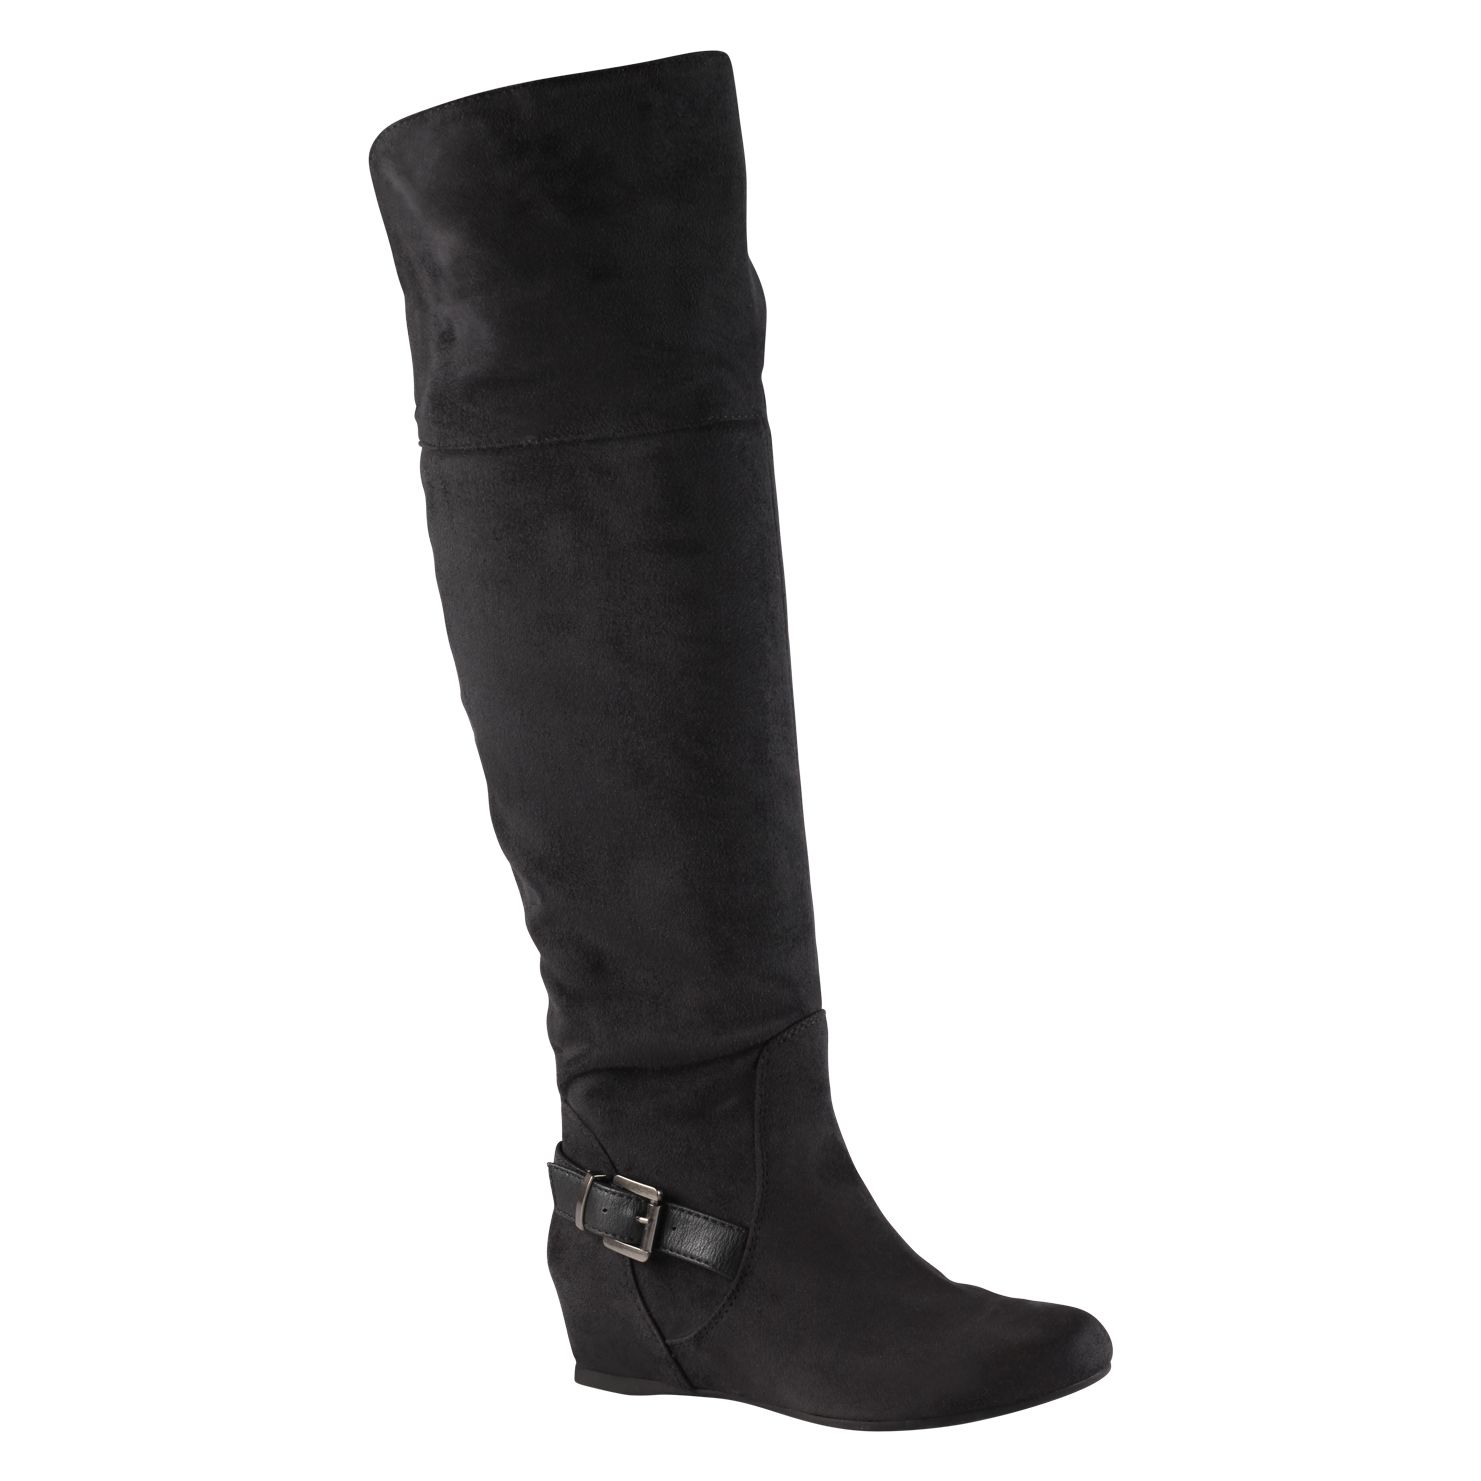 Skarivano Knee High Boots